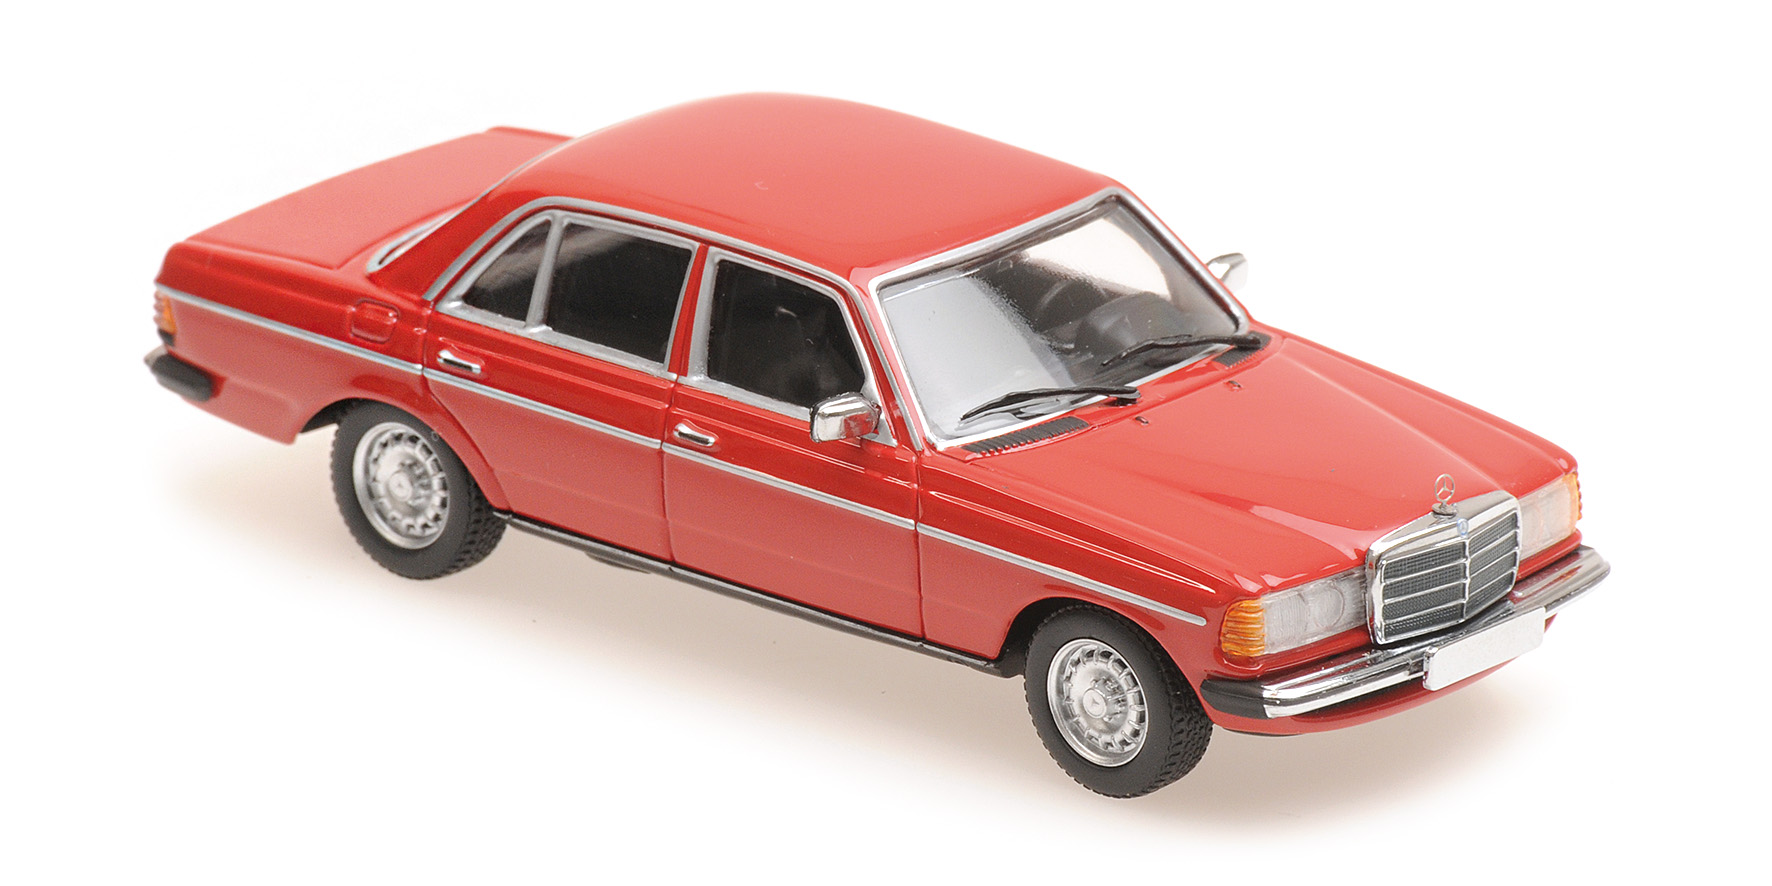 Mercedes-Benz 230E (W123) 1982 Red